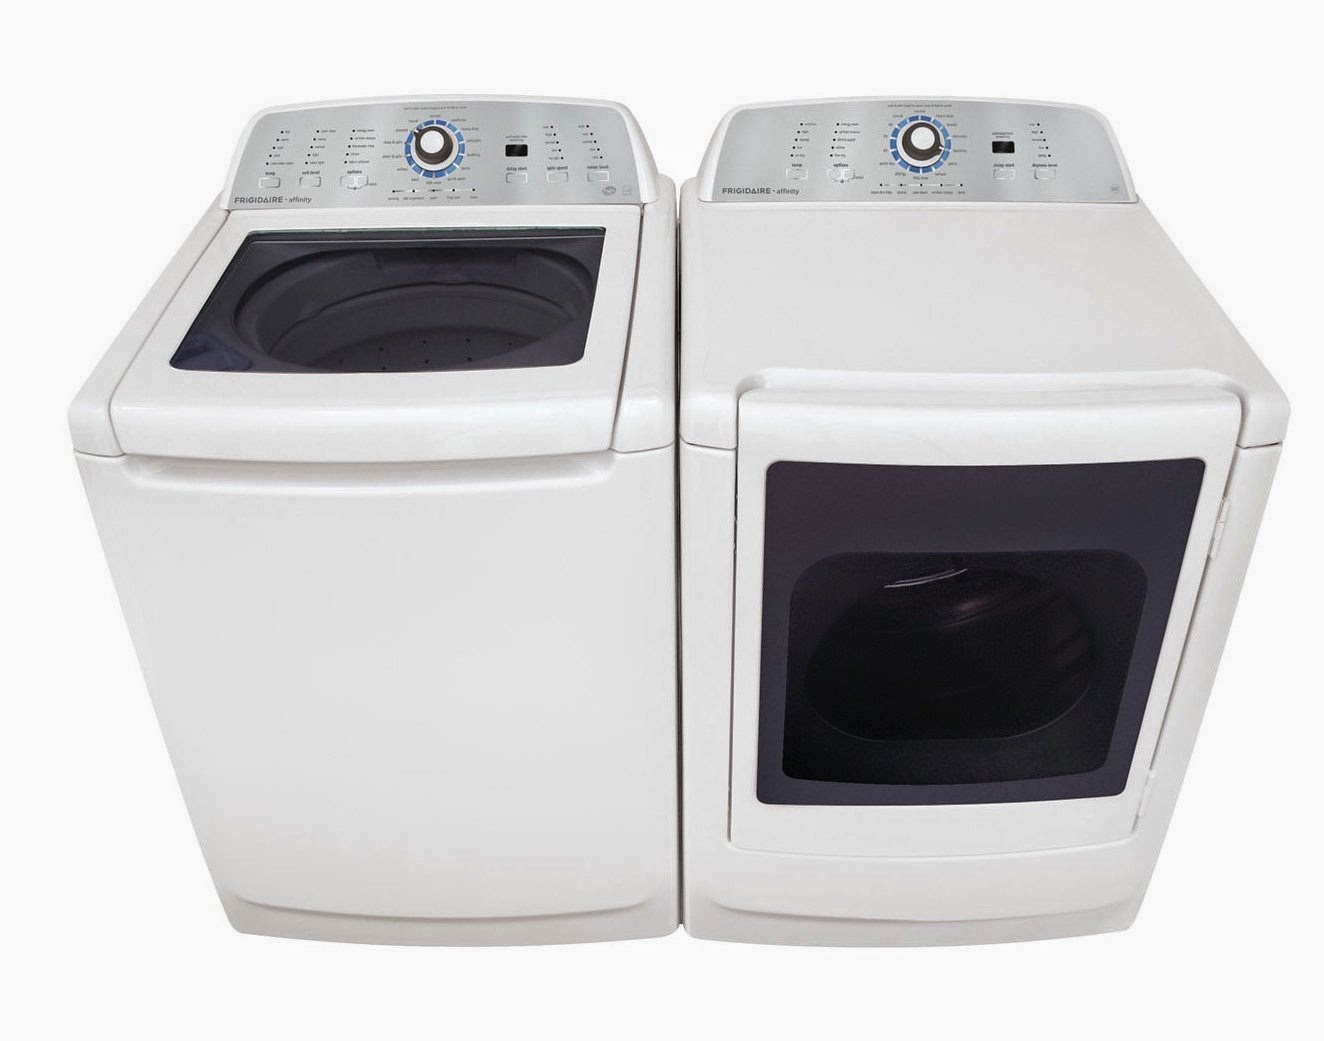 washer dryer reviews: frigidaire washer and dryer reviews